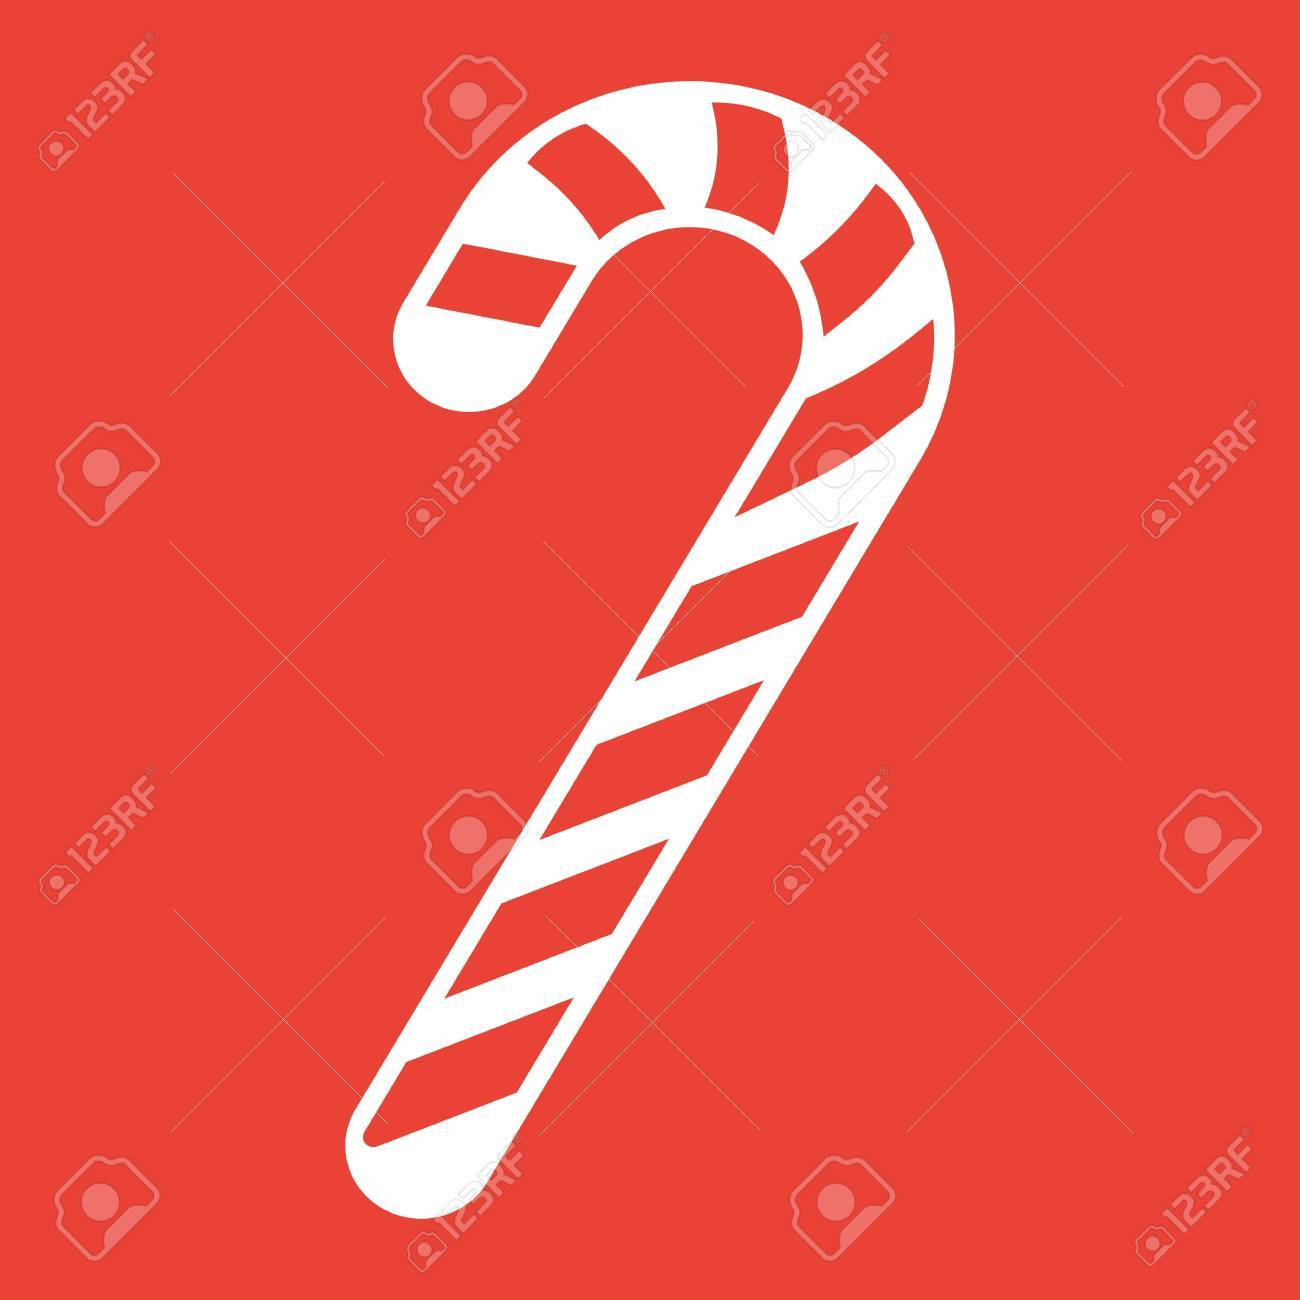 Christmas Candy Cane.Christmas Candy Cane Glyph Icon New Year And Christmas Xmas